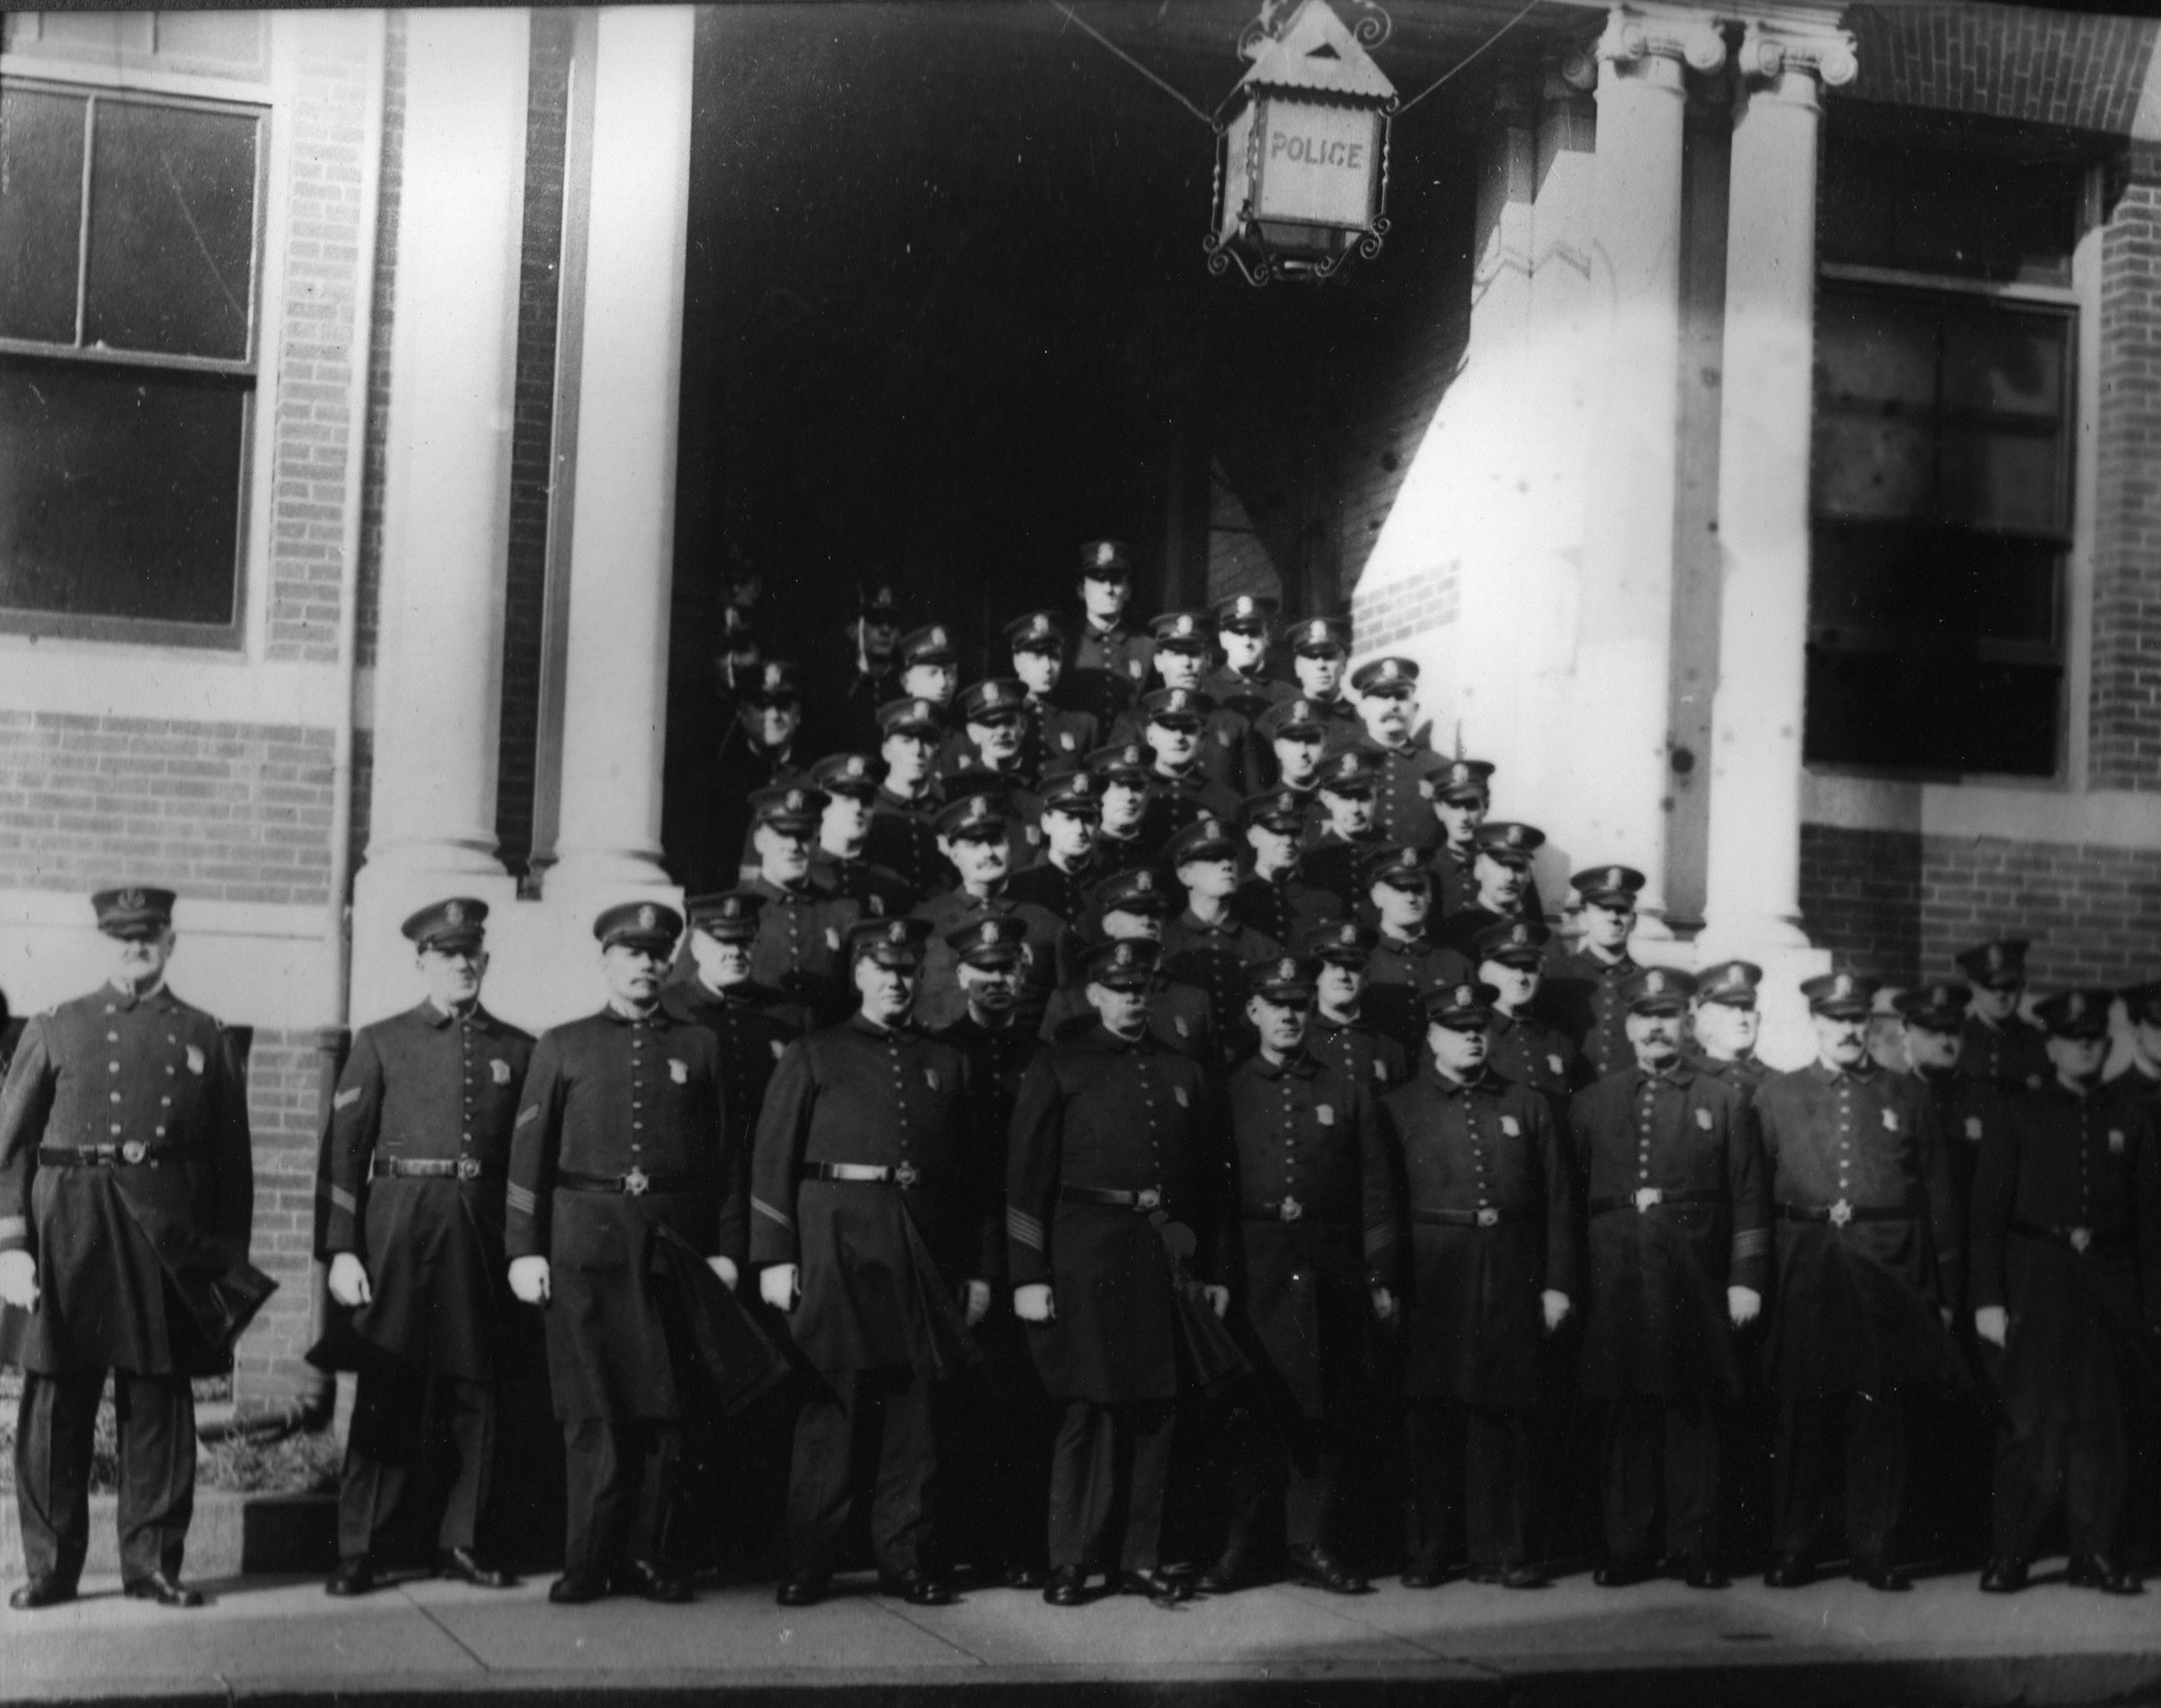 Malden Police Officers